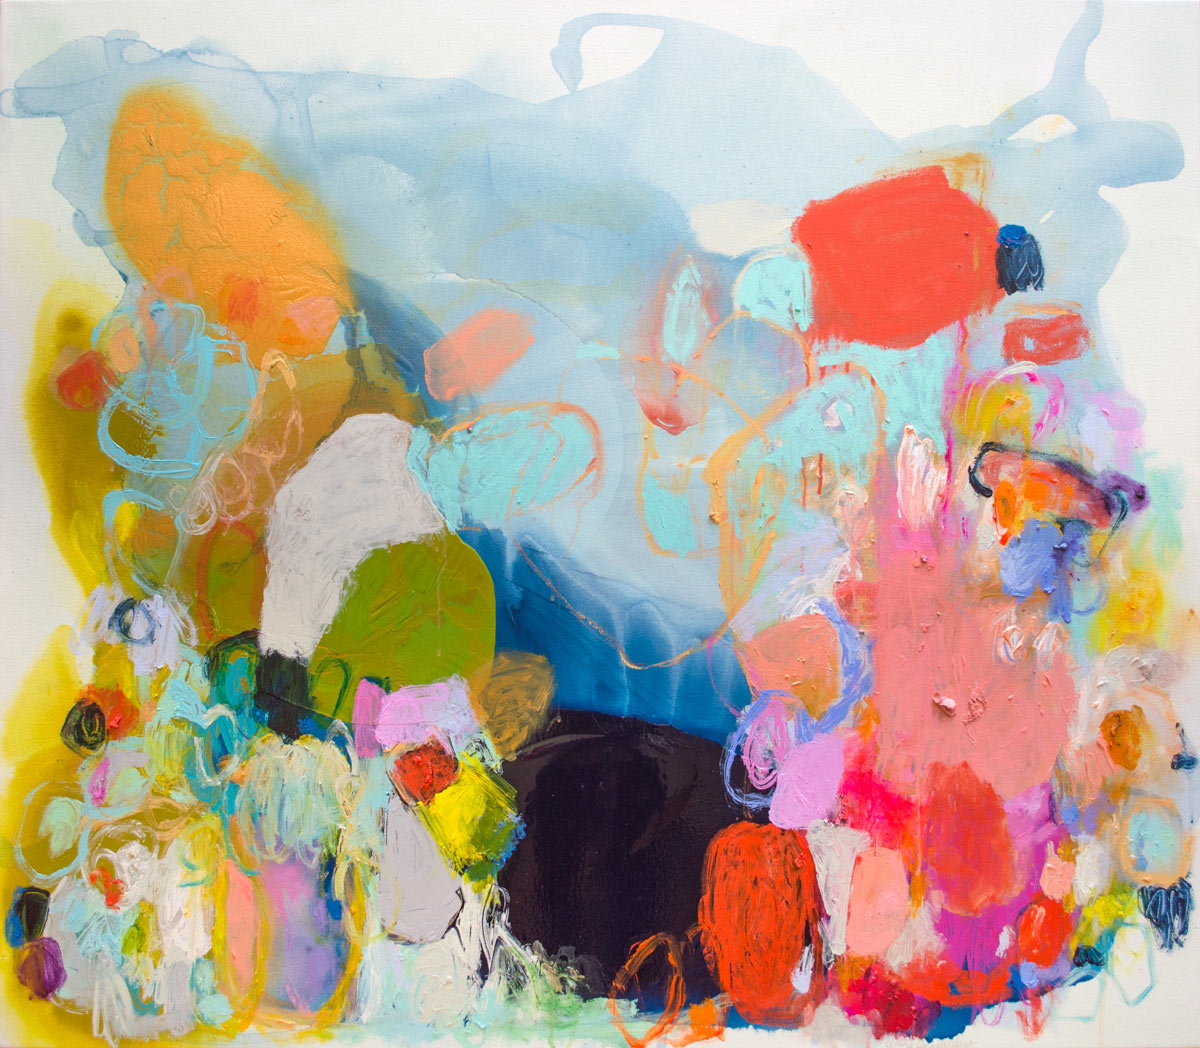 The Colorful Paintings of Claire Desjardins